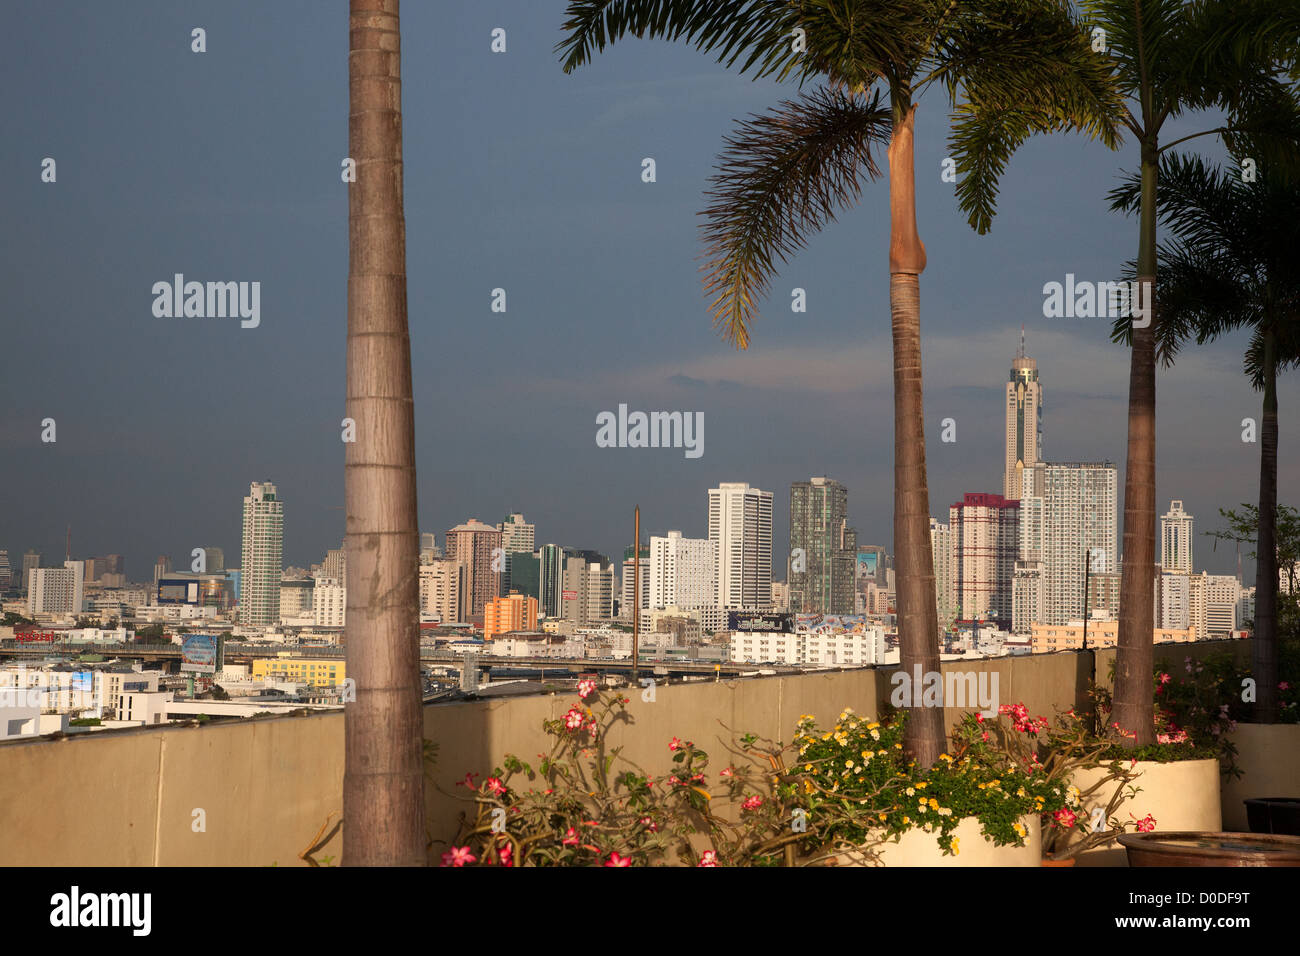 PANORAMA OF THE CITY'S SKYSCRAPERS SEEN FROM A TERRACE AT THE PRINCE HOTEL BANGKOK THAILAND - Stock Image